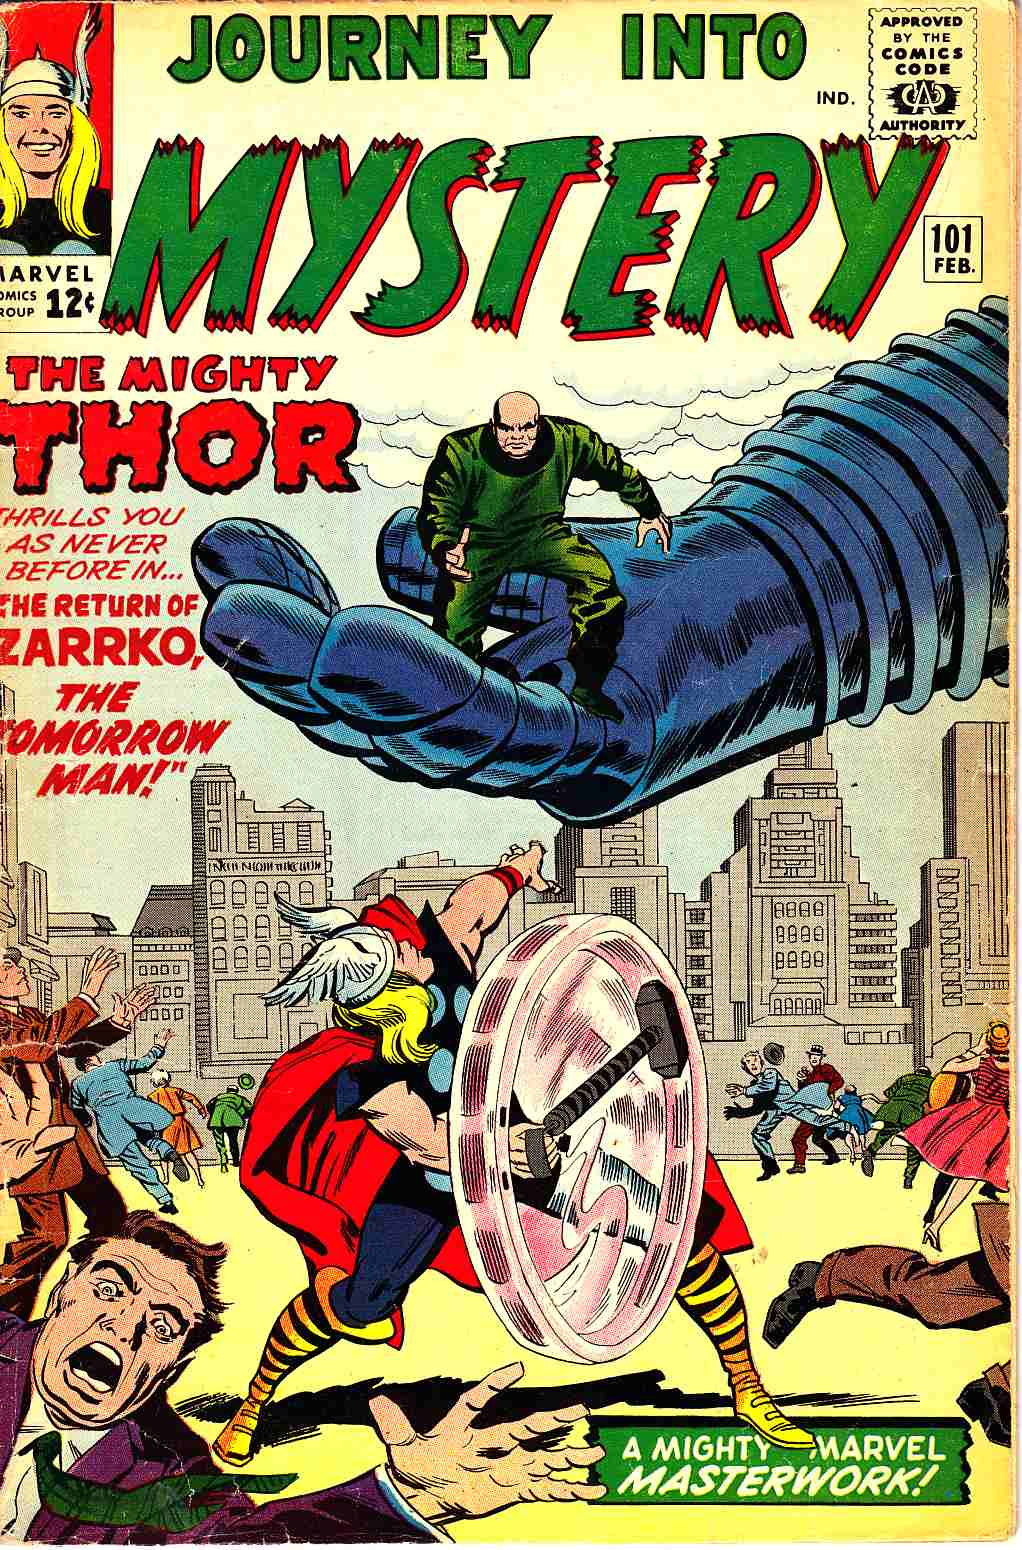 Journey Into Mystery Thor #101 Very Good (4.0) [Marvel Comic] THUMBNAIL